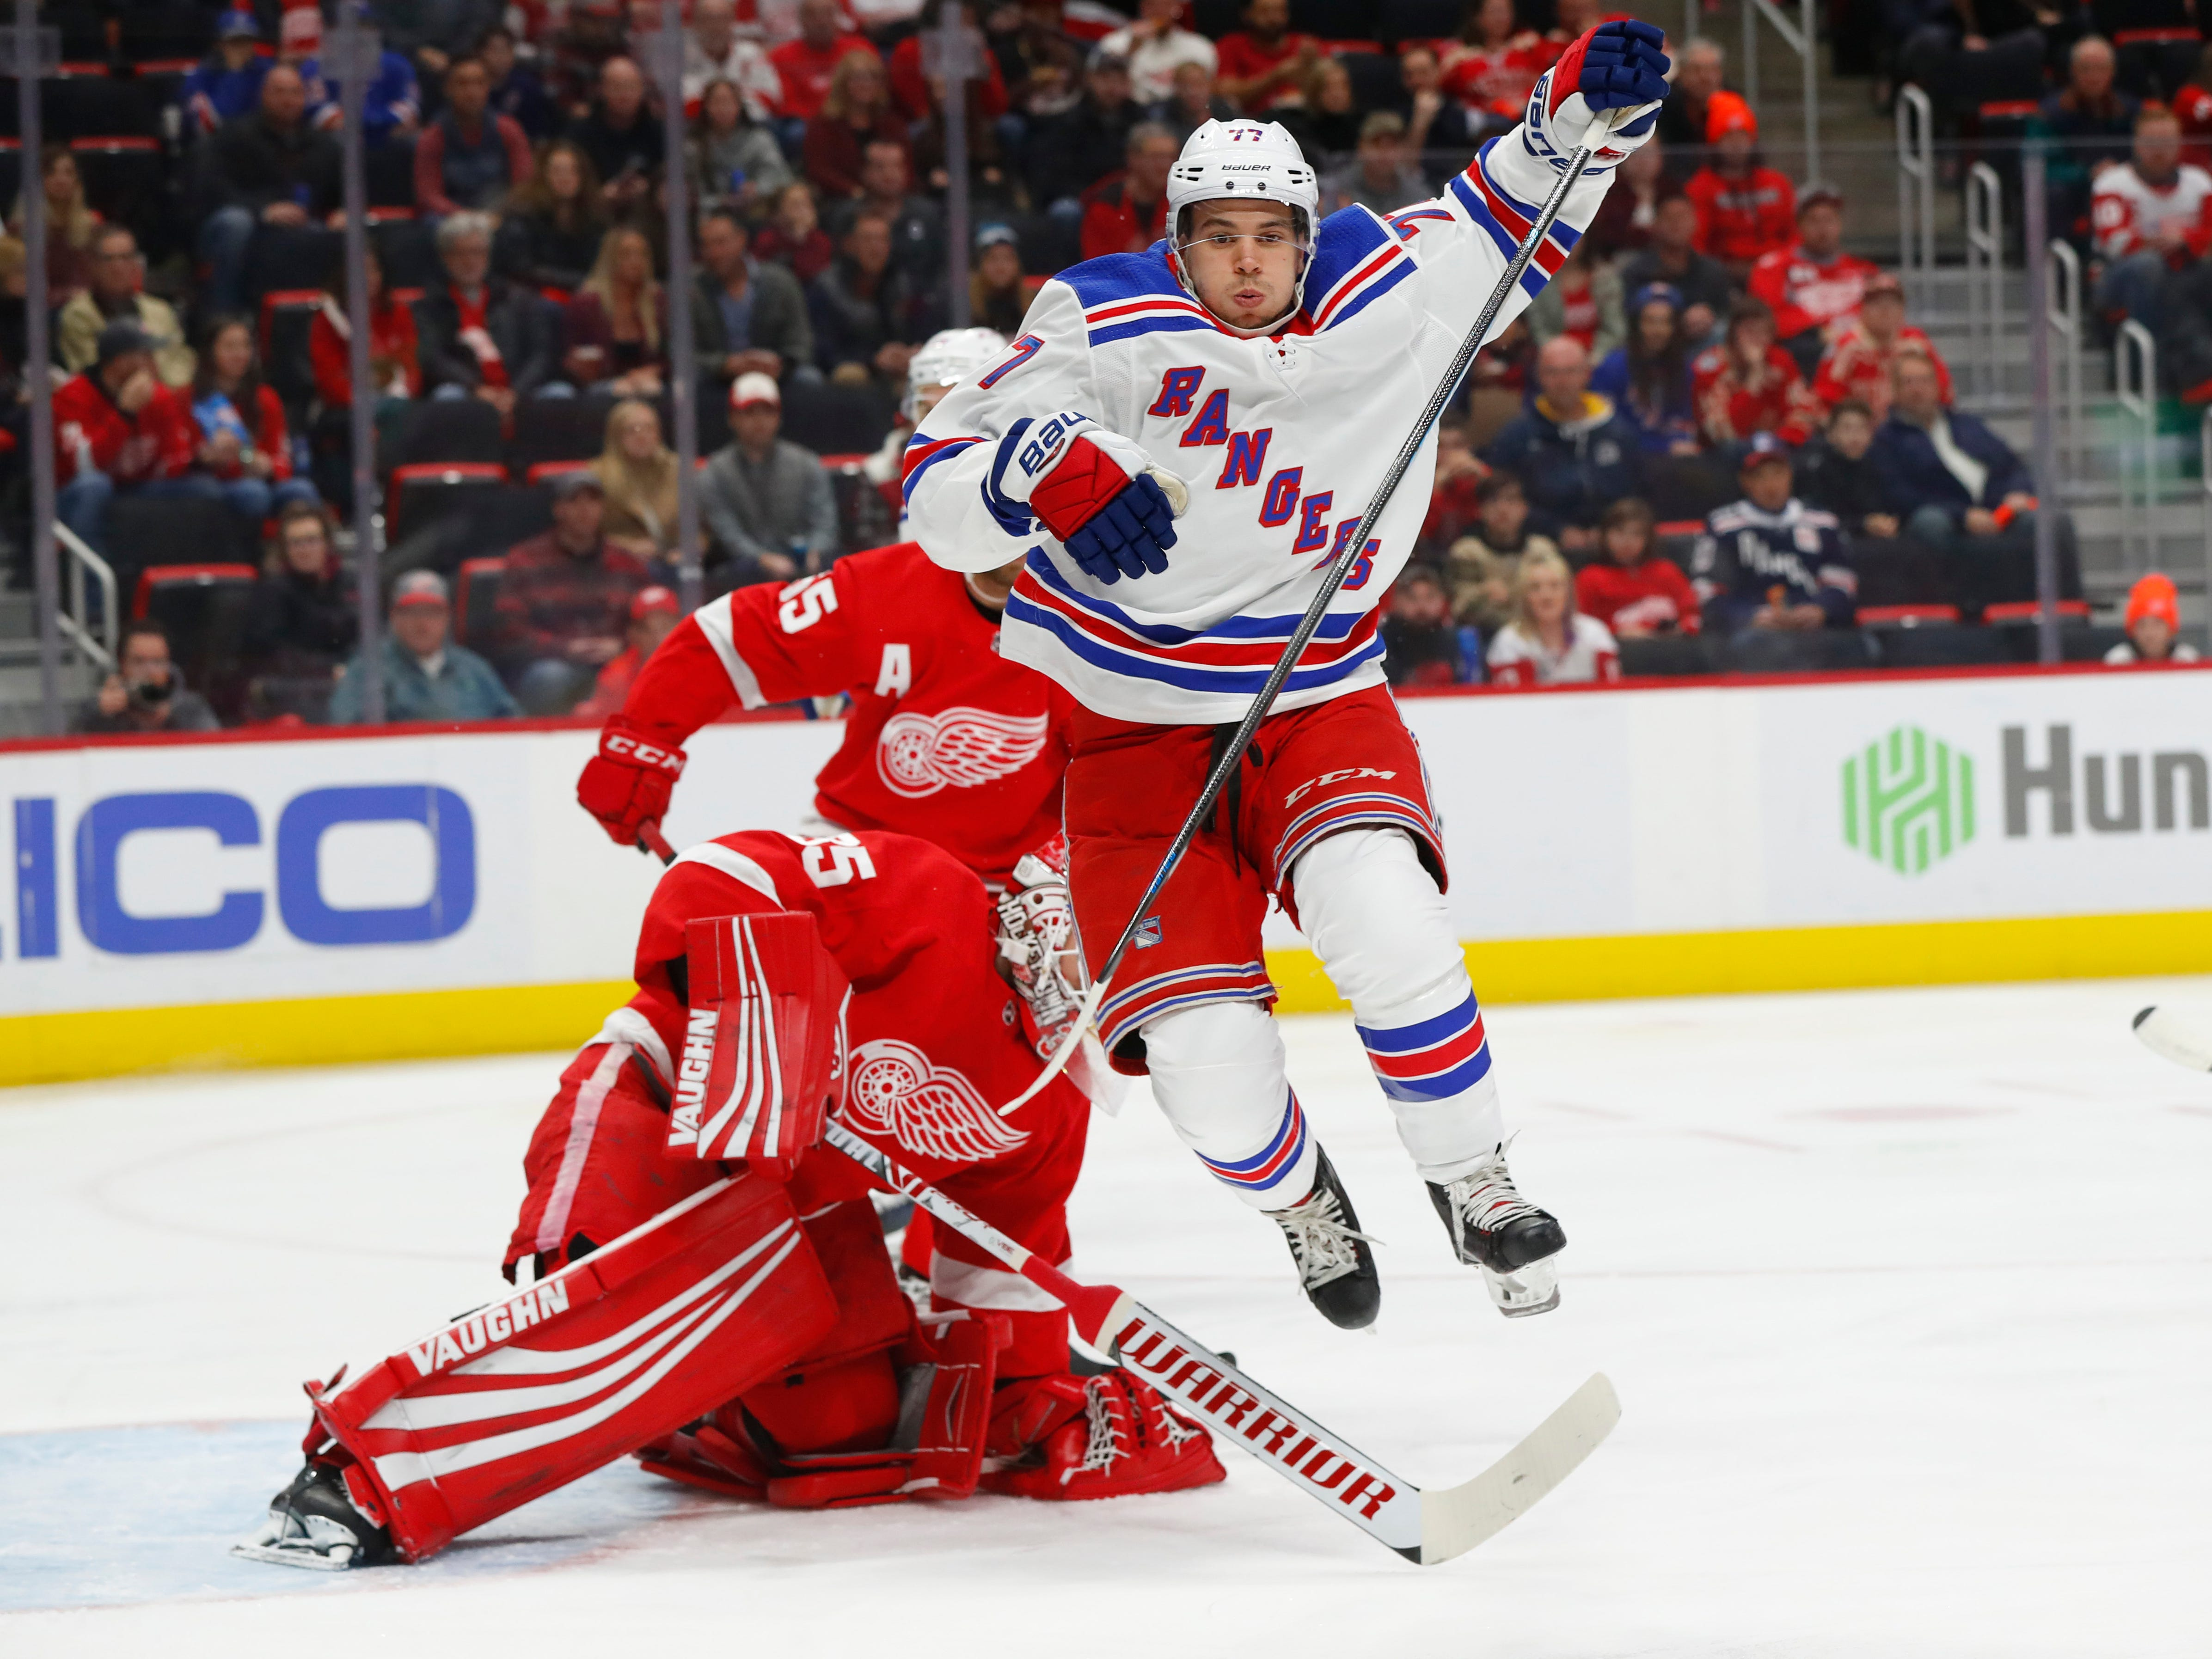 Detroit Red Wings goalie Jimmy Howard stops a shot by New York Rangers' Tony DeAngelo in the first period of an NHL hockey game in Detroit, Friday, Nov. 9, 2018.